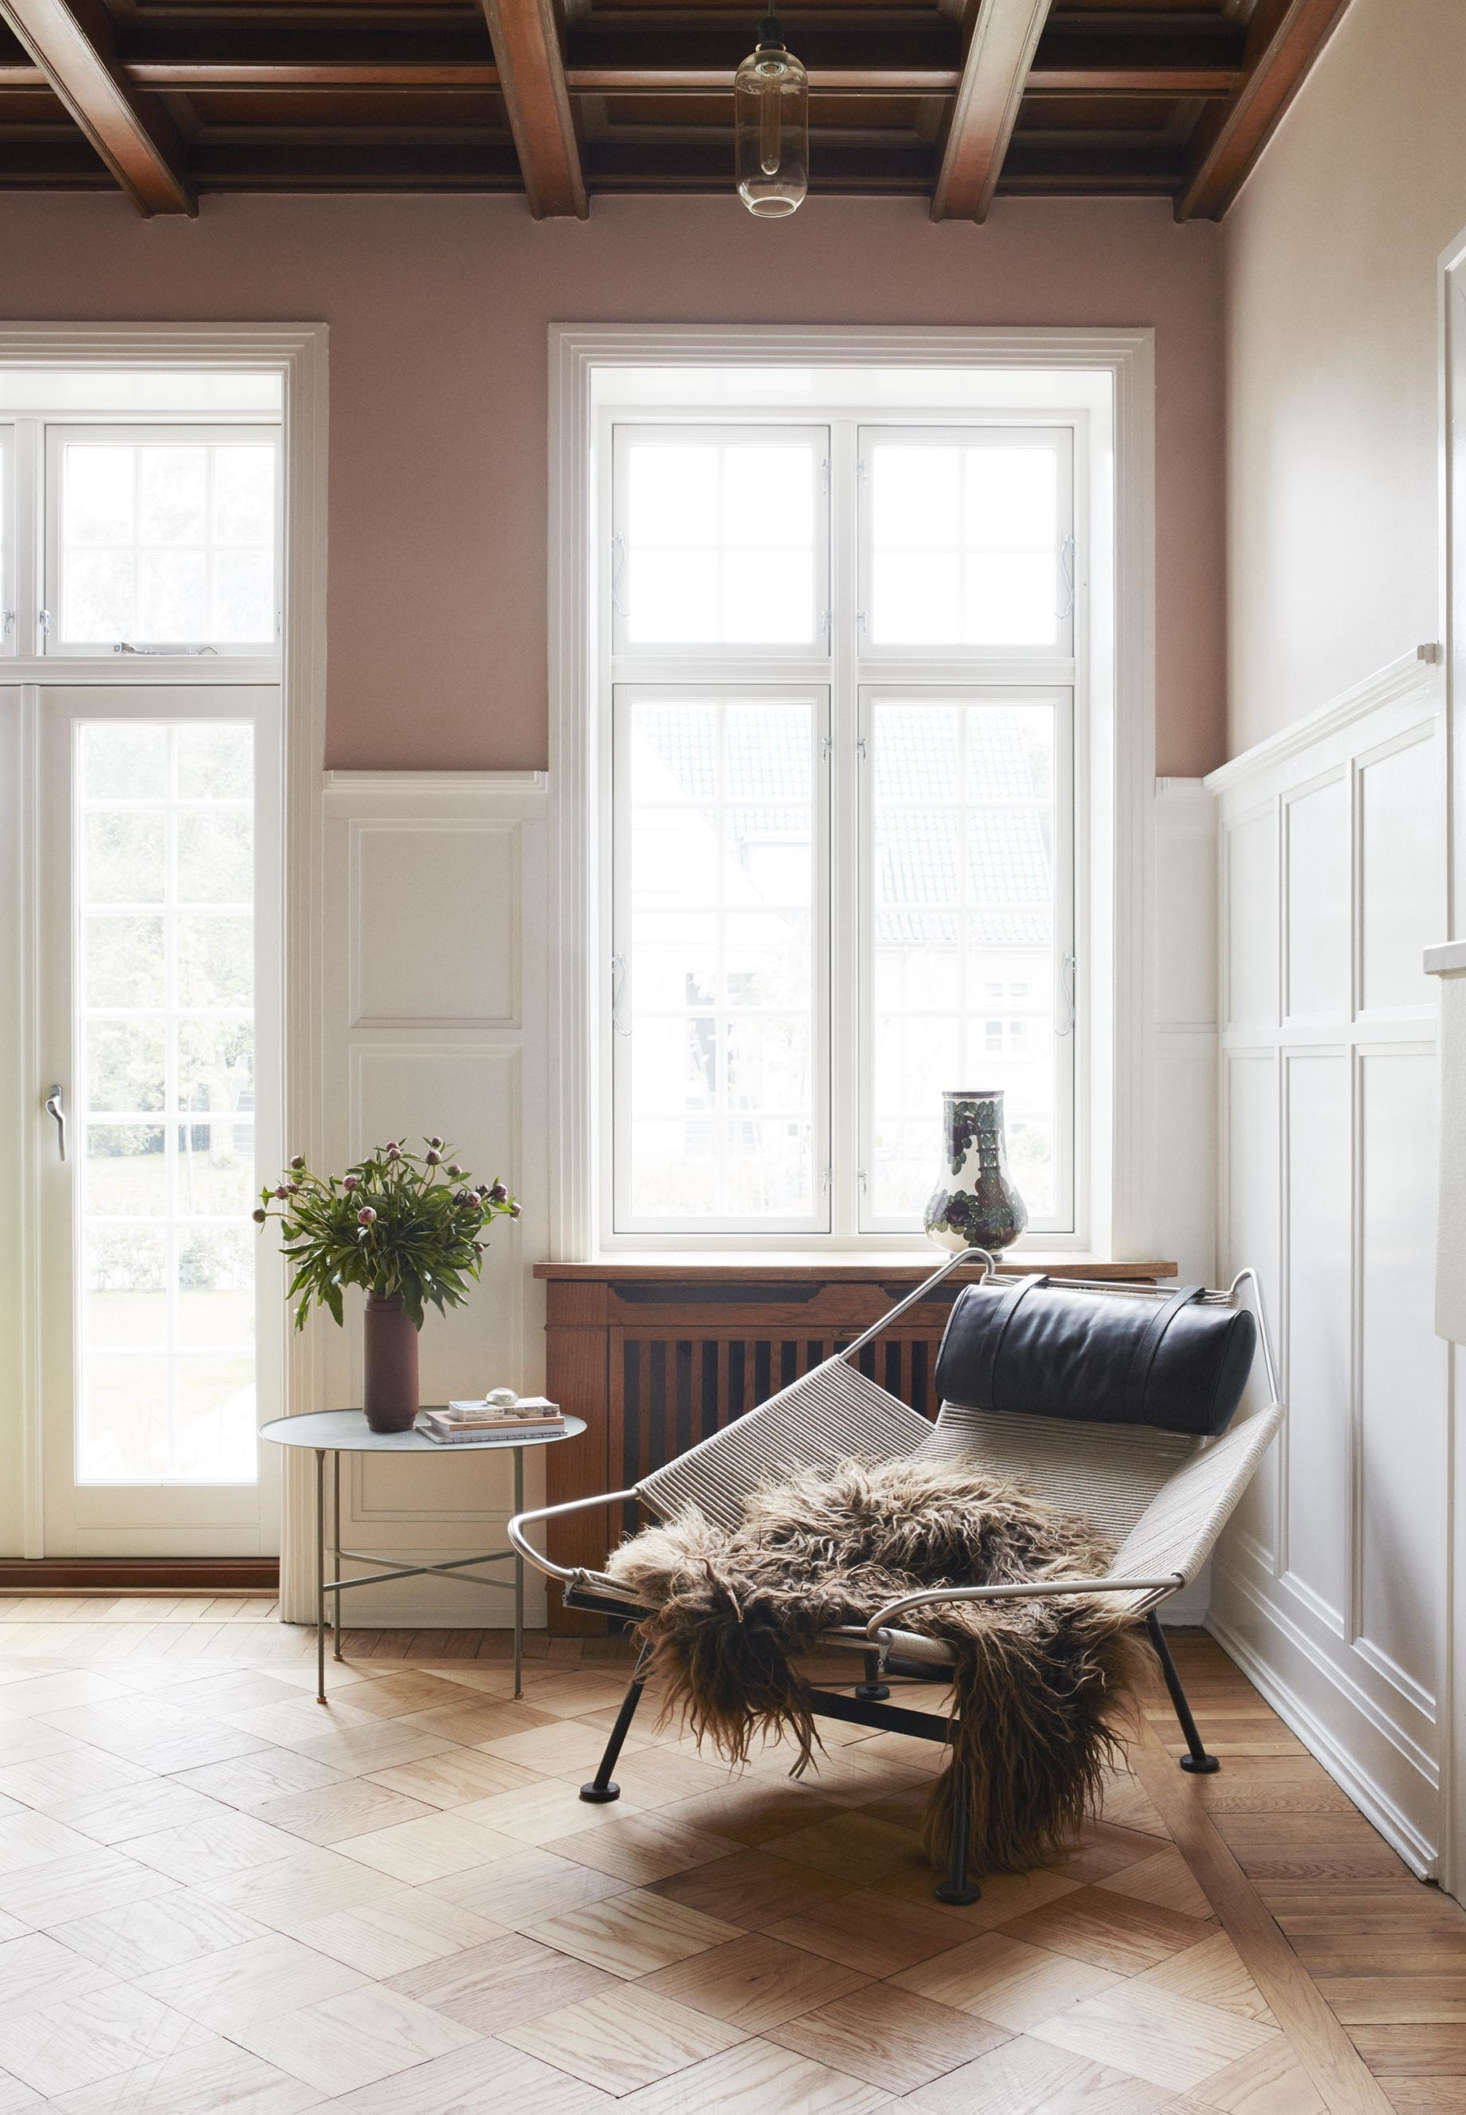 In another corner, a sheepskin is slung over a Wegner PP